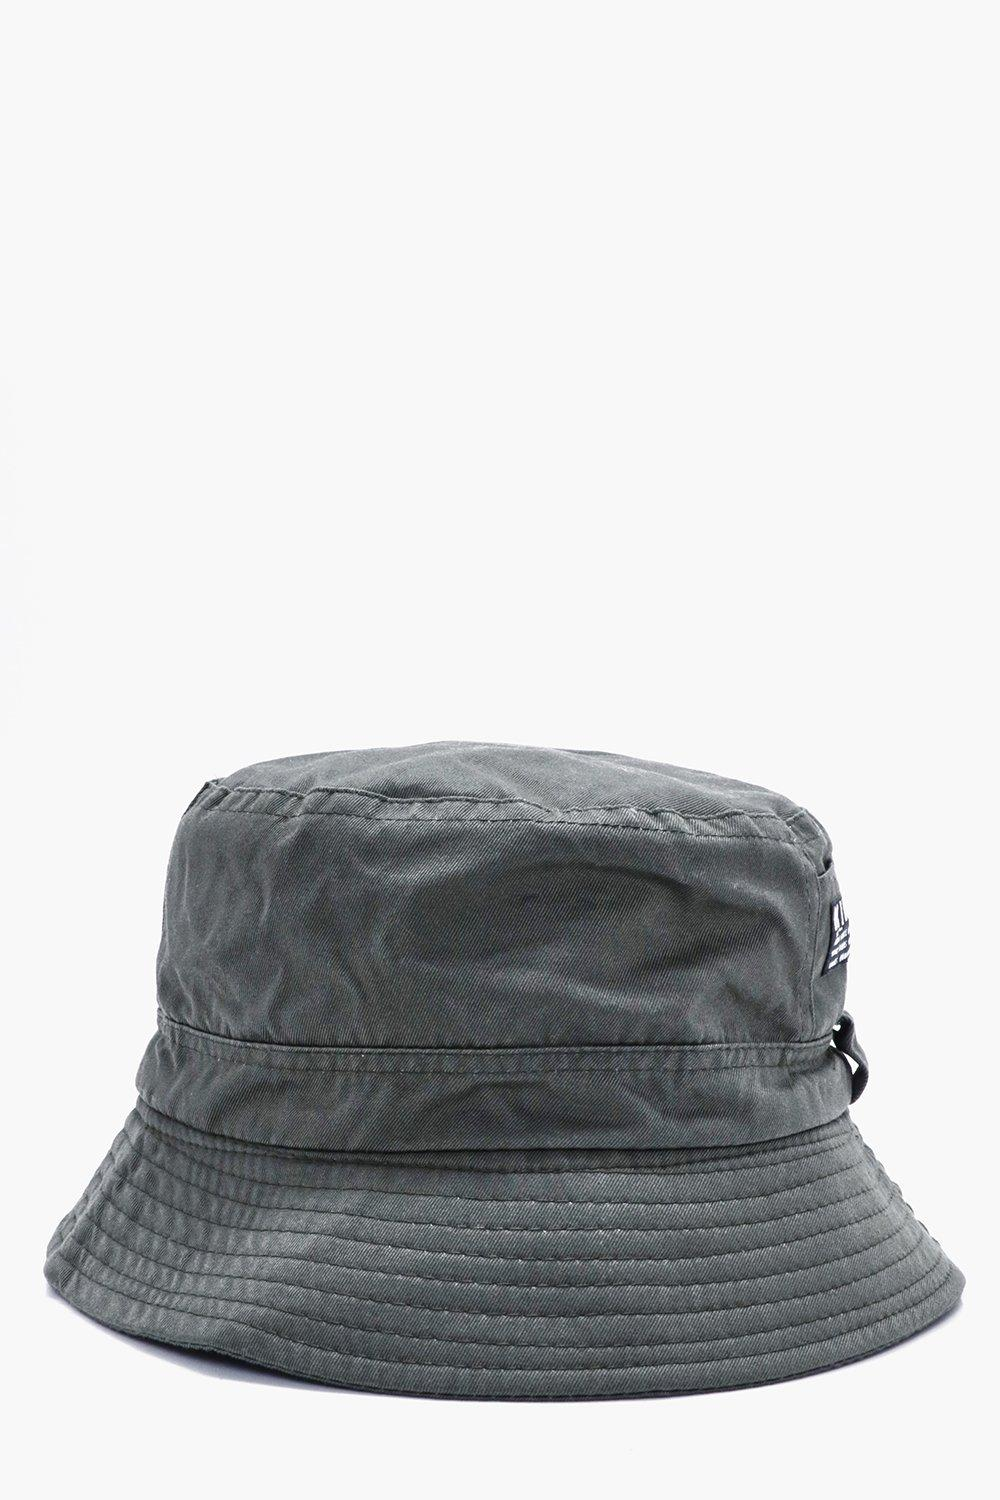 Bucket Hats - khaki - Plain Bucket Hats - khaki